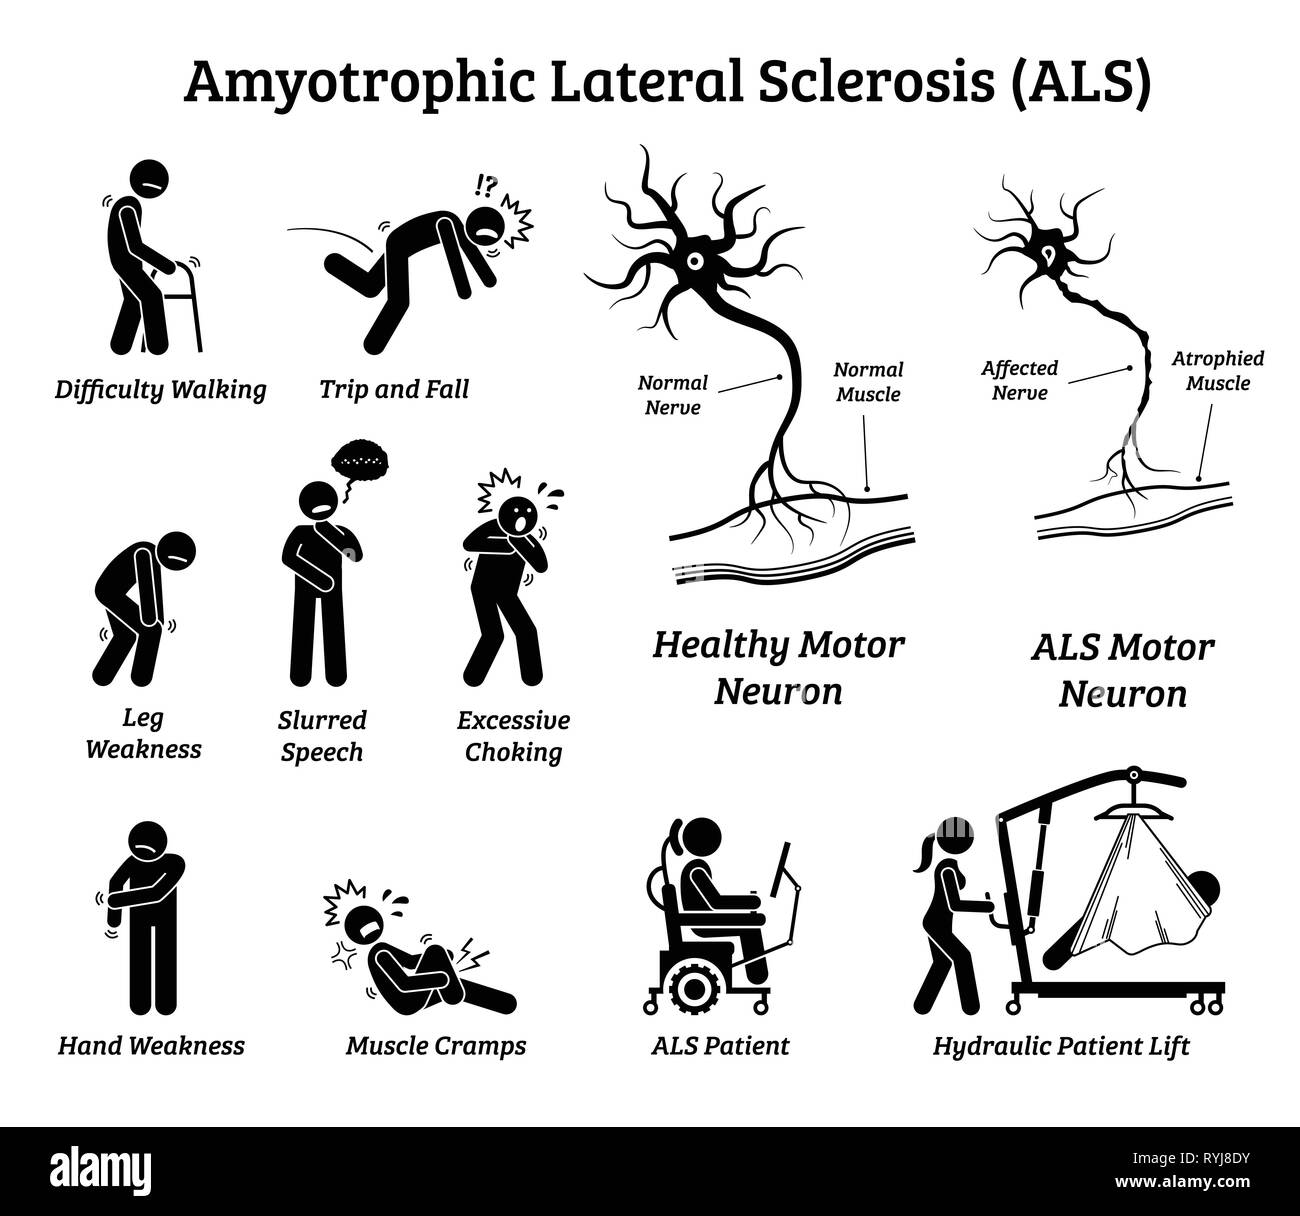 Amyotrophic lateral sclerosis ALS disease signs and symptoms. Illustrations depict nervous system or neurological disease in ALS patient. - Stock Image